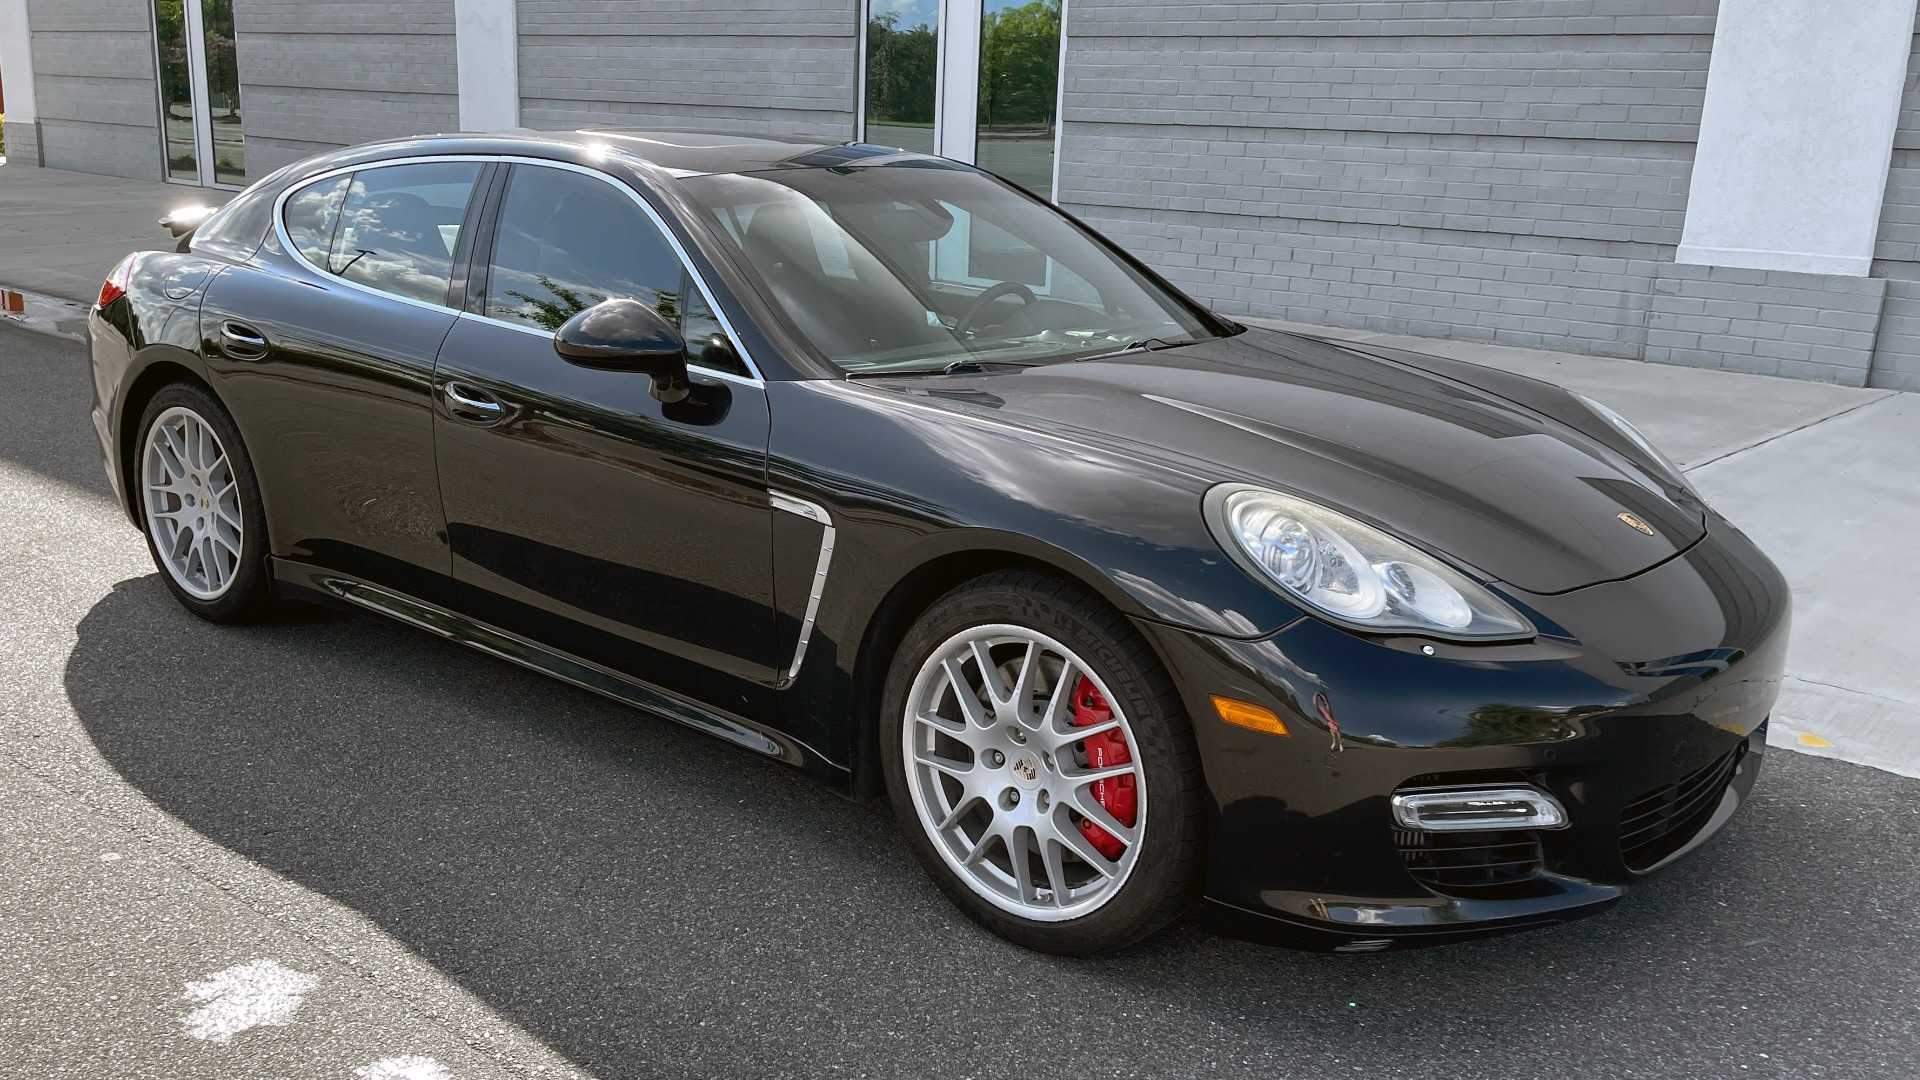 Used 2010 Porsche PANAMERA 4DR HB TURBO / SPORT CHRONO / BURMESTER / AUTO CLIMATE CONTROL for sale $40,995 at Formula Imports in Charlotte NC 28227 6